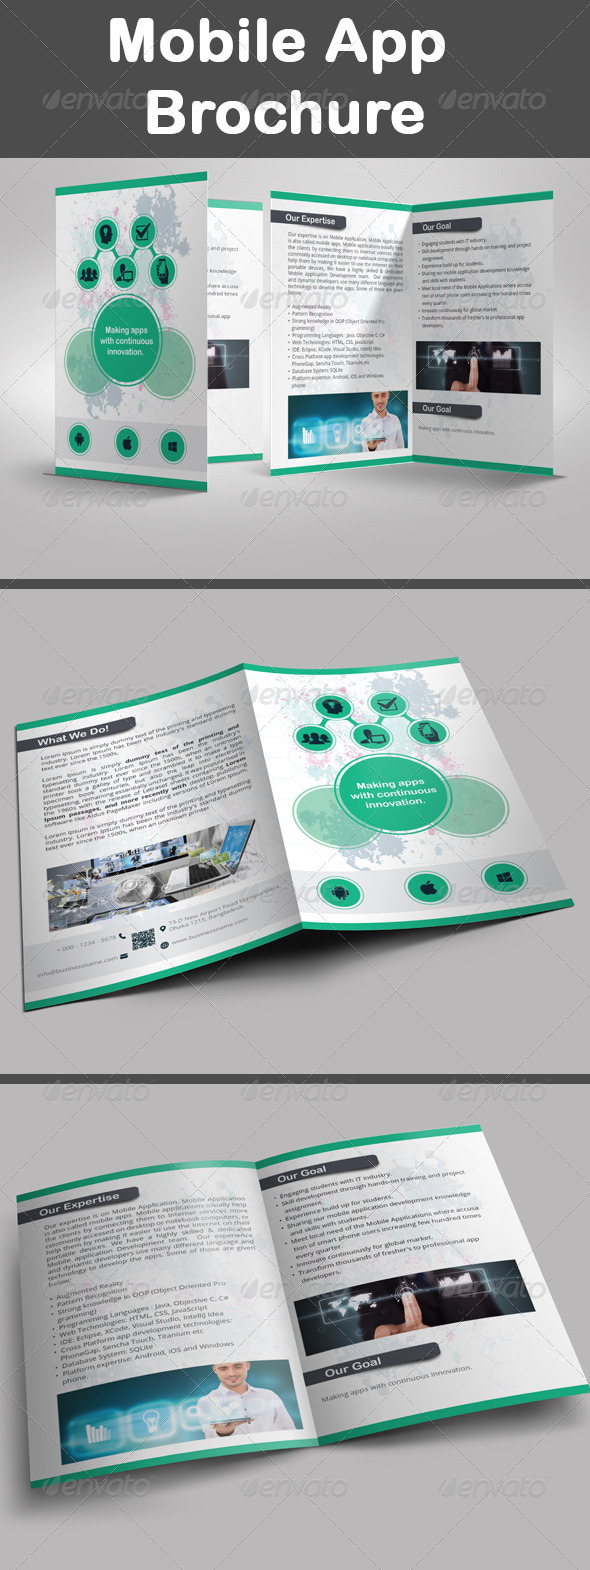 GraphicRiver Mobile App Brochure 7909825